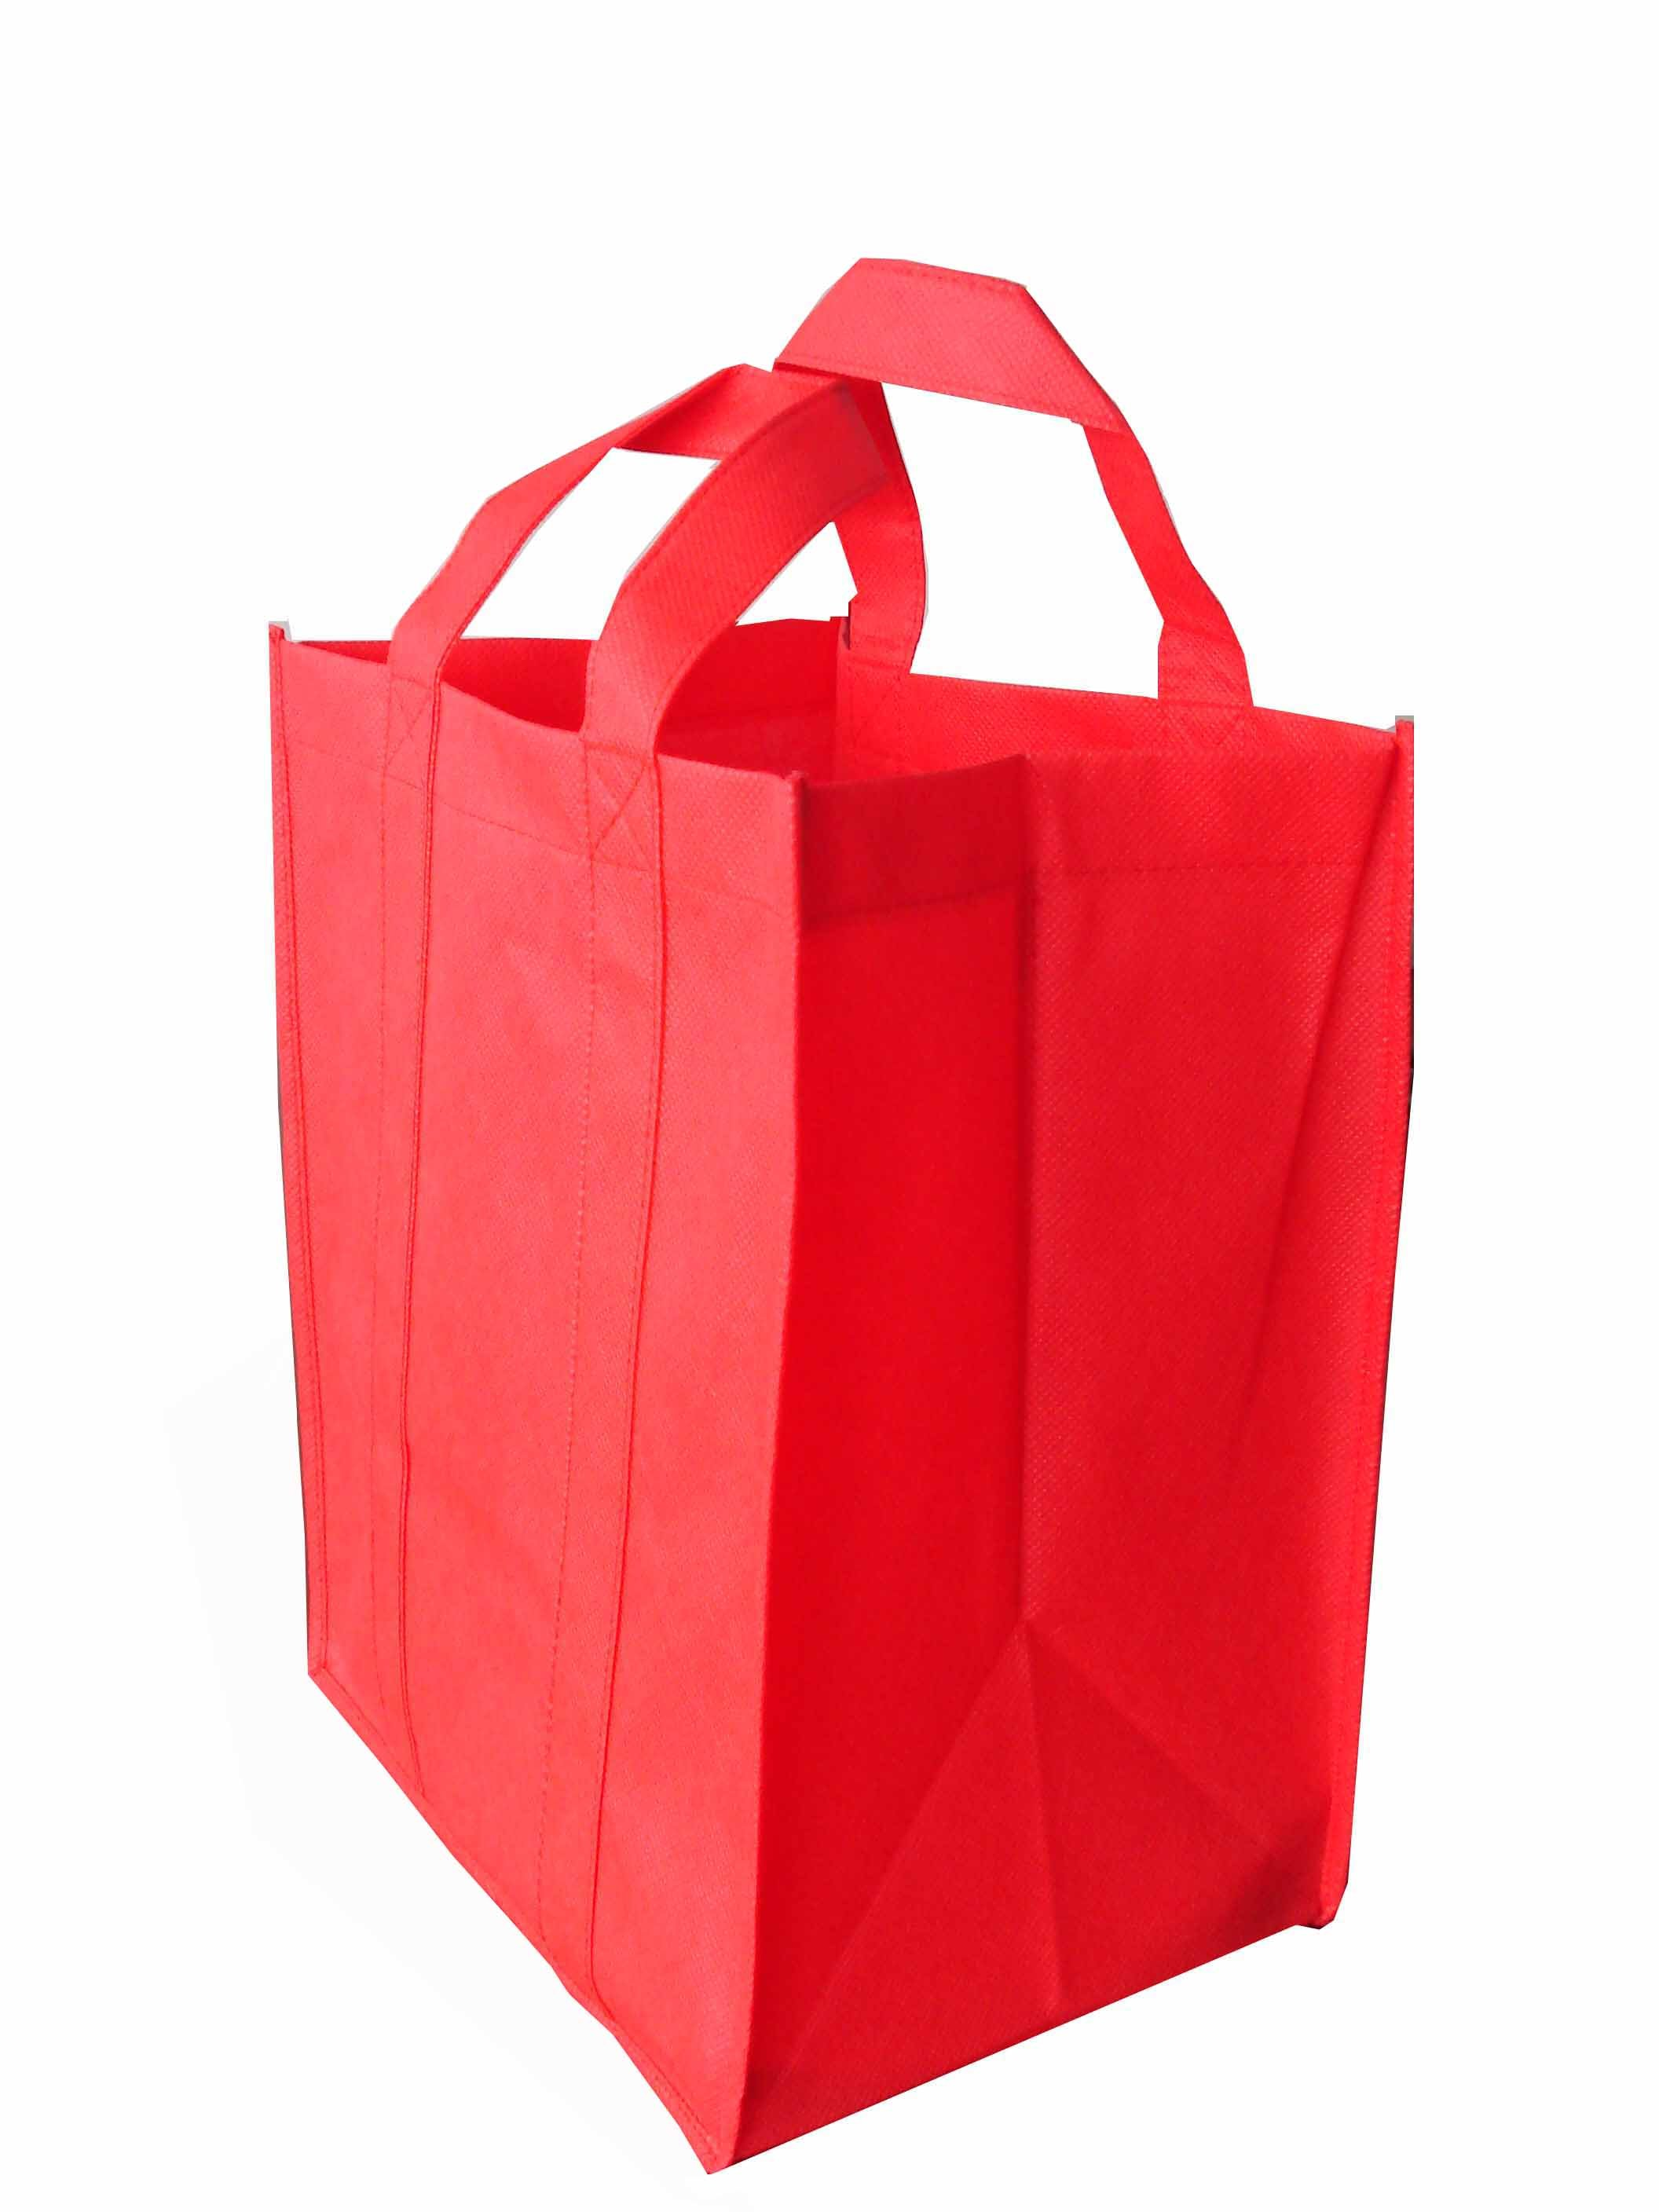 Shopping Bag Pictures - ClipArt Best